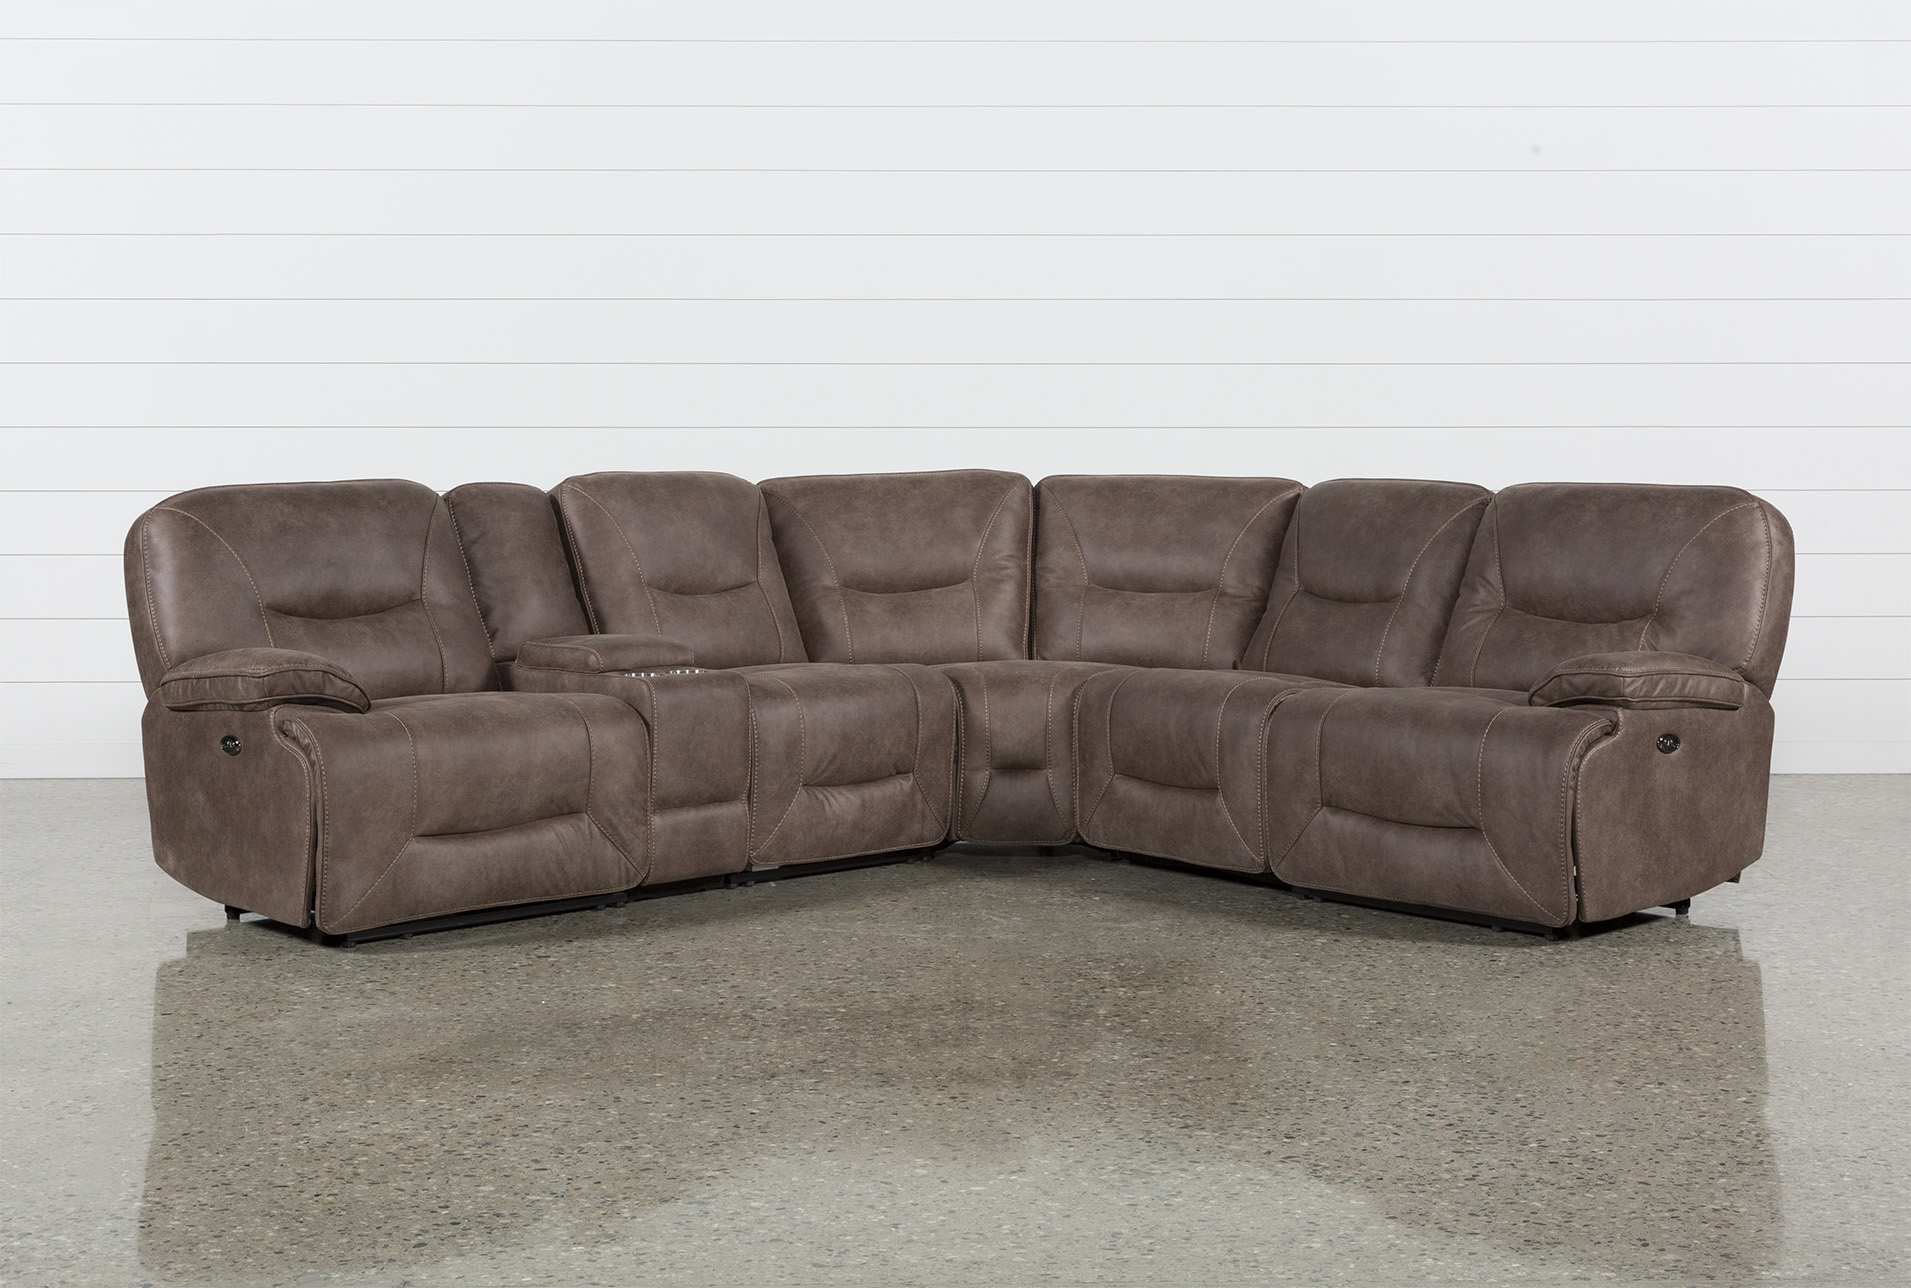 Charmant Jackson 6 Piece Power Reclining Sectional (Qty: 1) Has Been Successfully  Added To Your Cart.